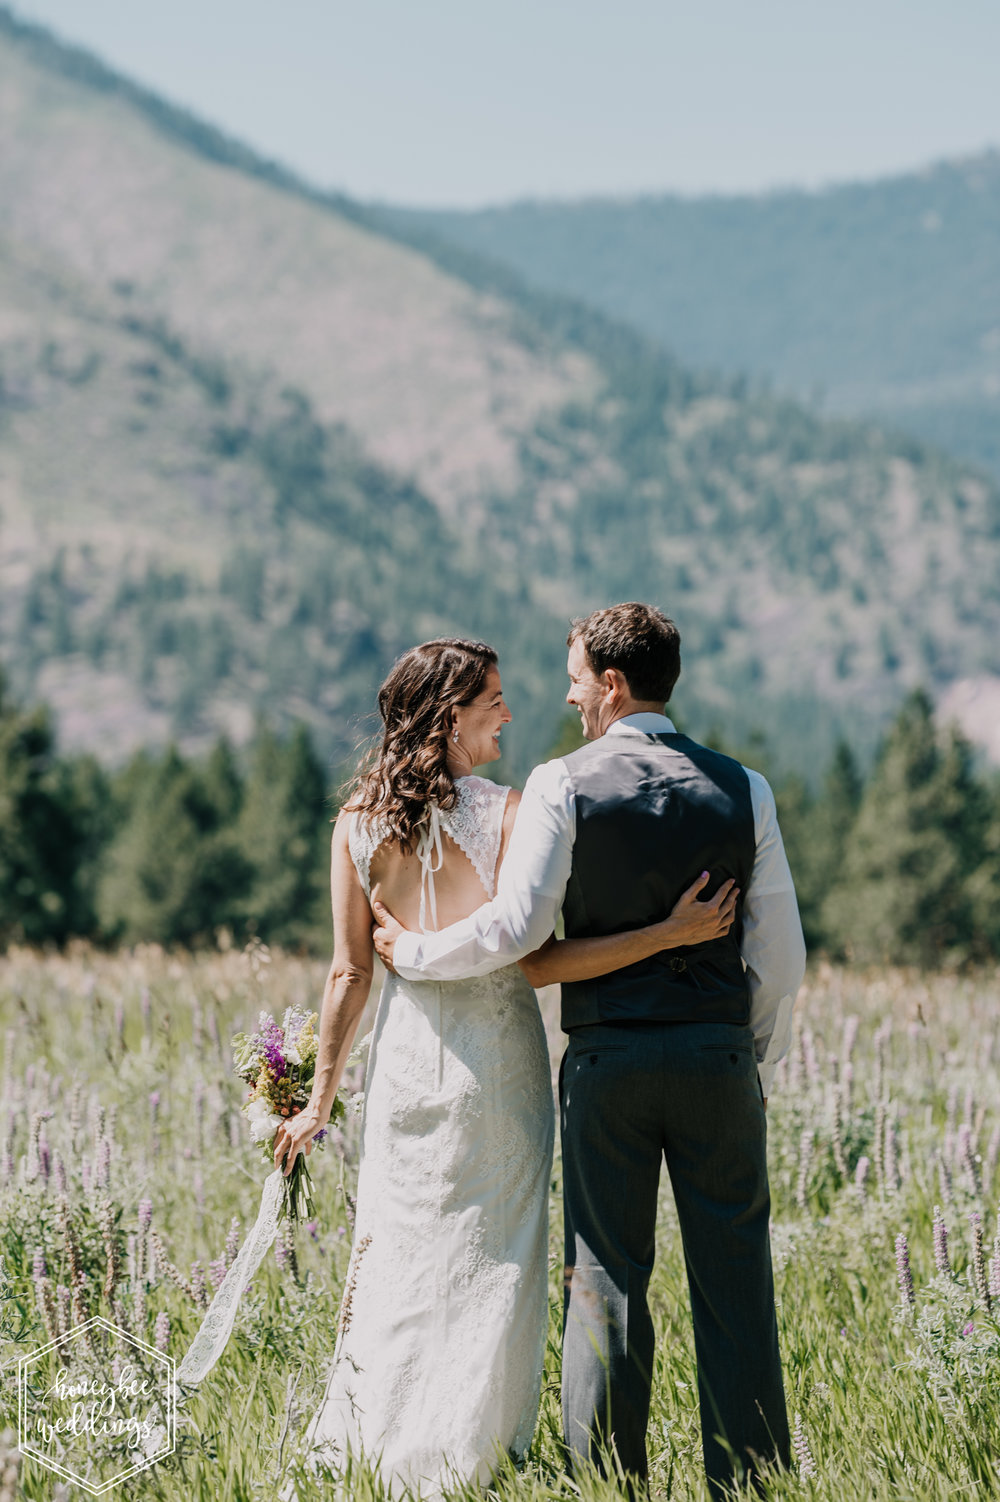 116 White Raven Wedding_Montana Wedding Photographer_Honeybee Weddings_ Meghan Maloney + Arza Hammond 2018-8406.jpg